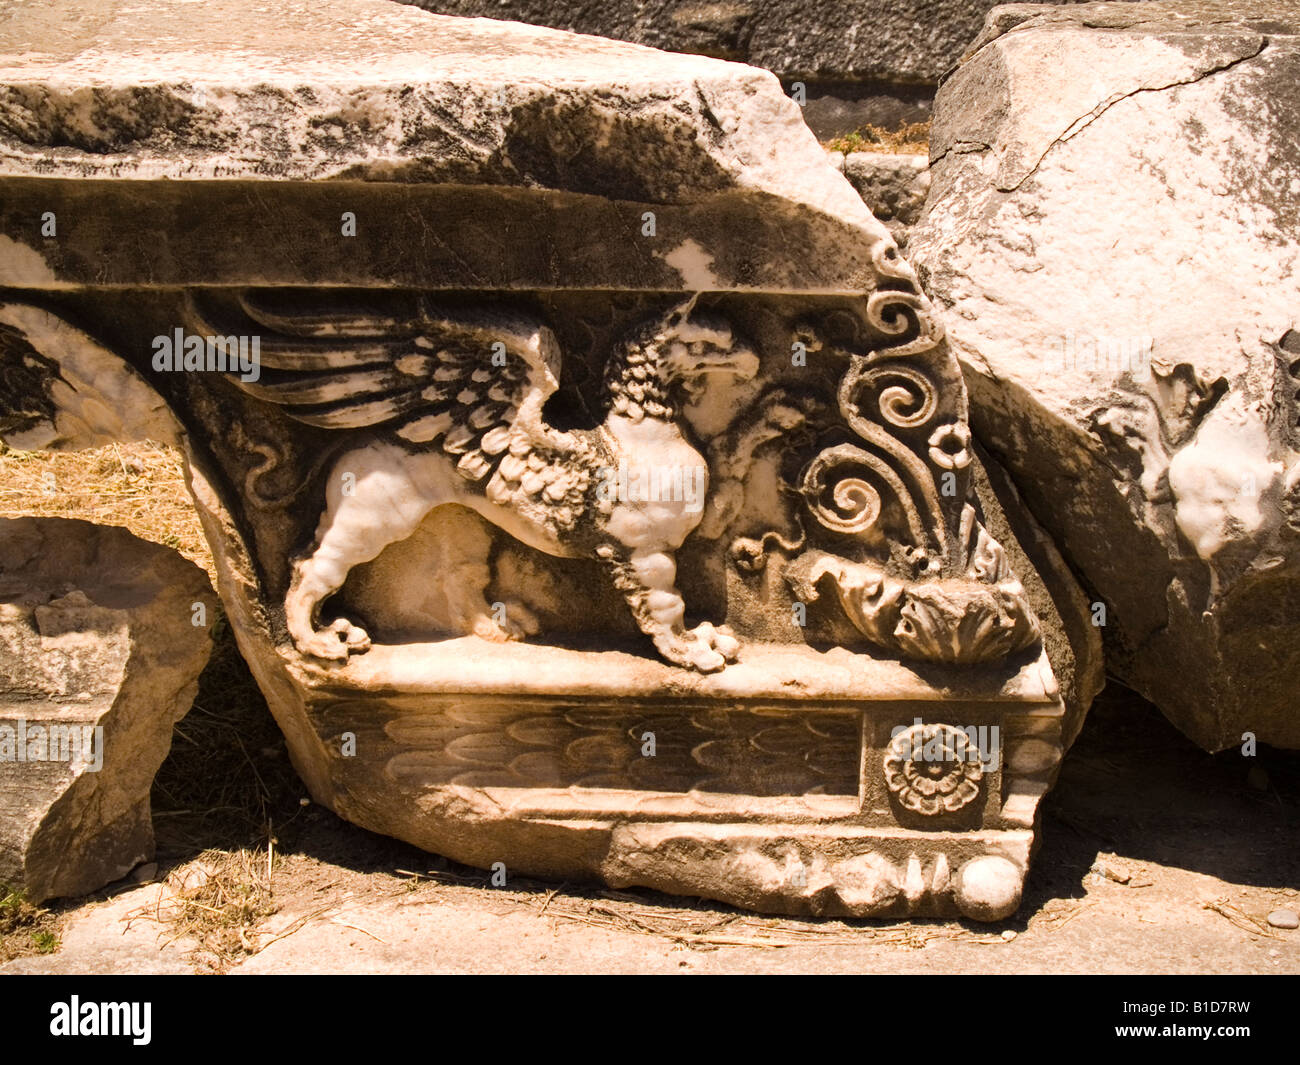 Frieze, relief from the Temple of Apollo, Didim, Turkey - Stock Image